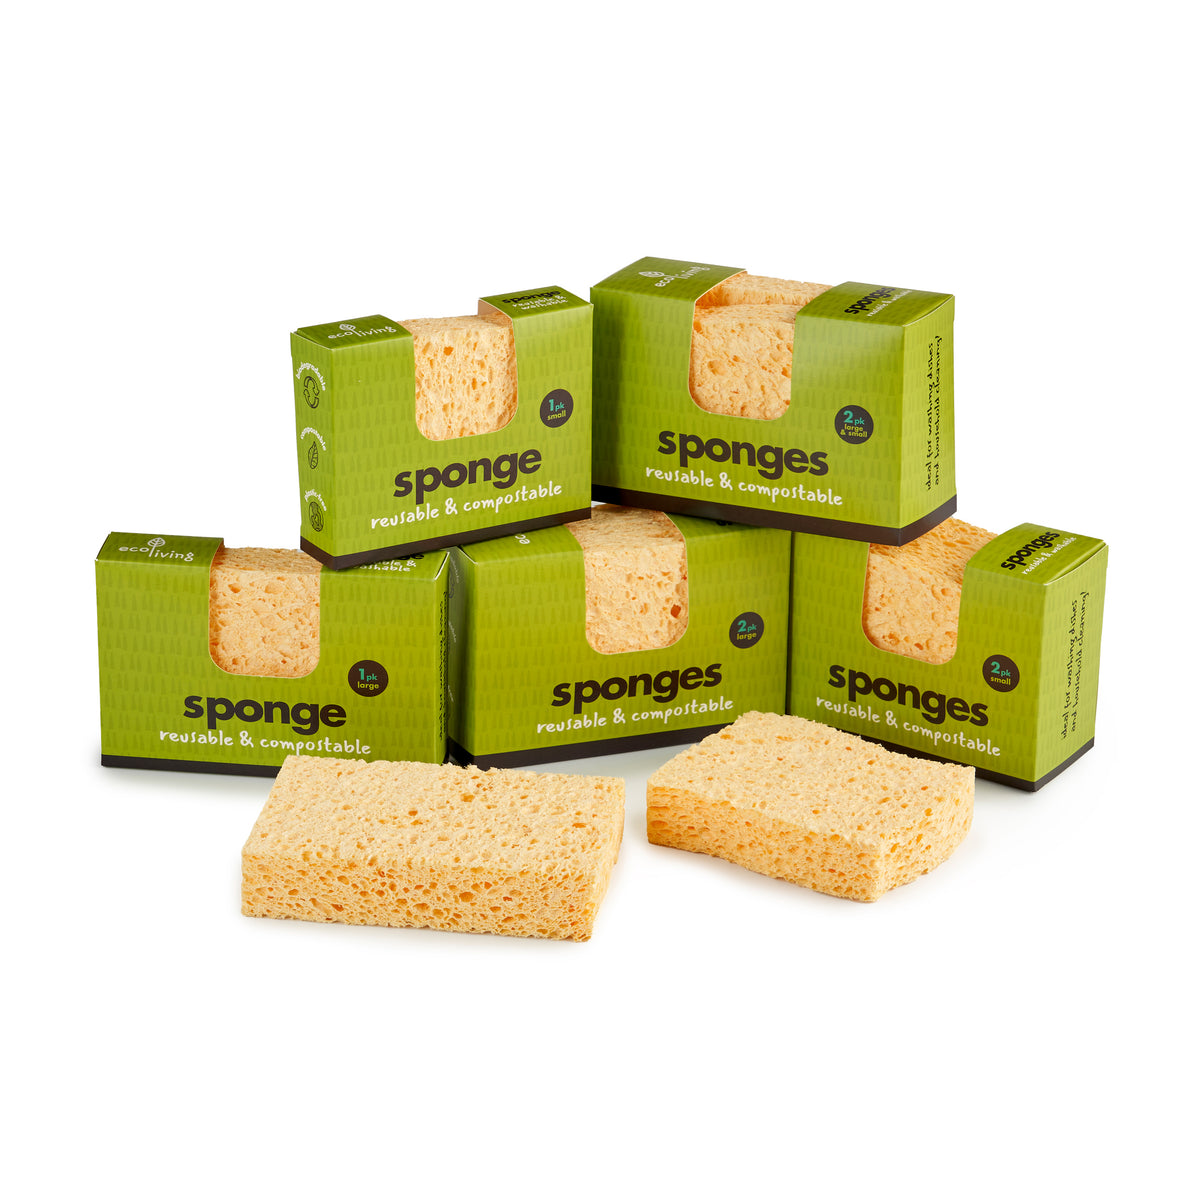 Compostable Cleaning Sponge - 1x Larger & 1x Smaller Wavy Sponge | Cleaning Sponge - The Naughty Shrew